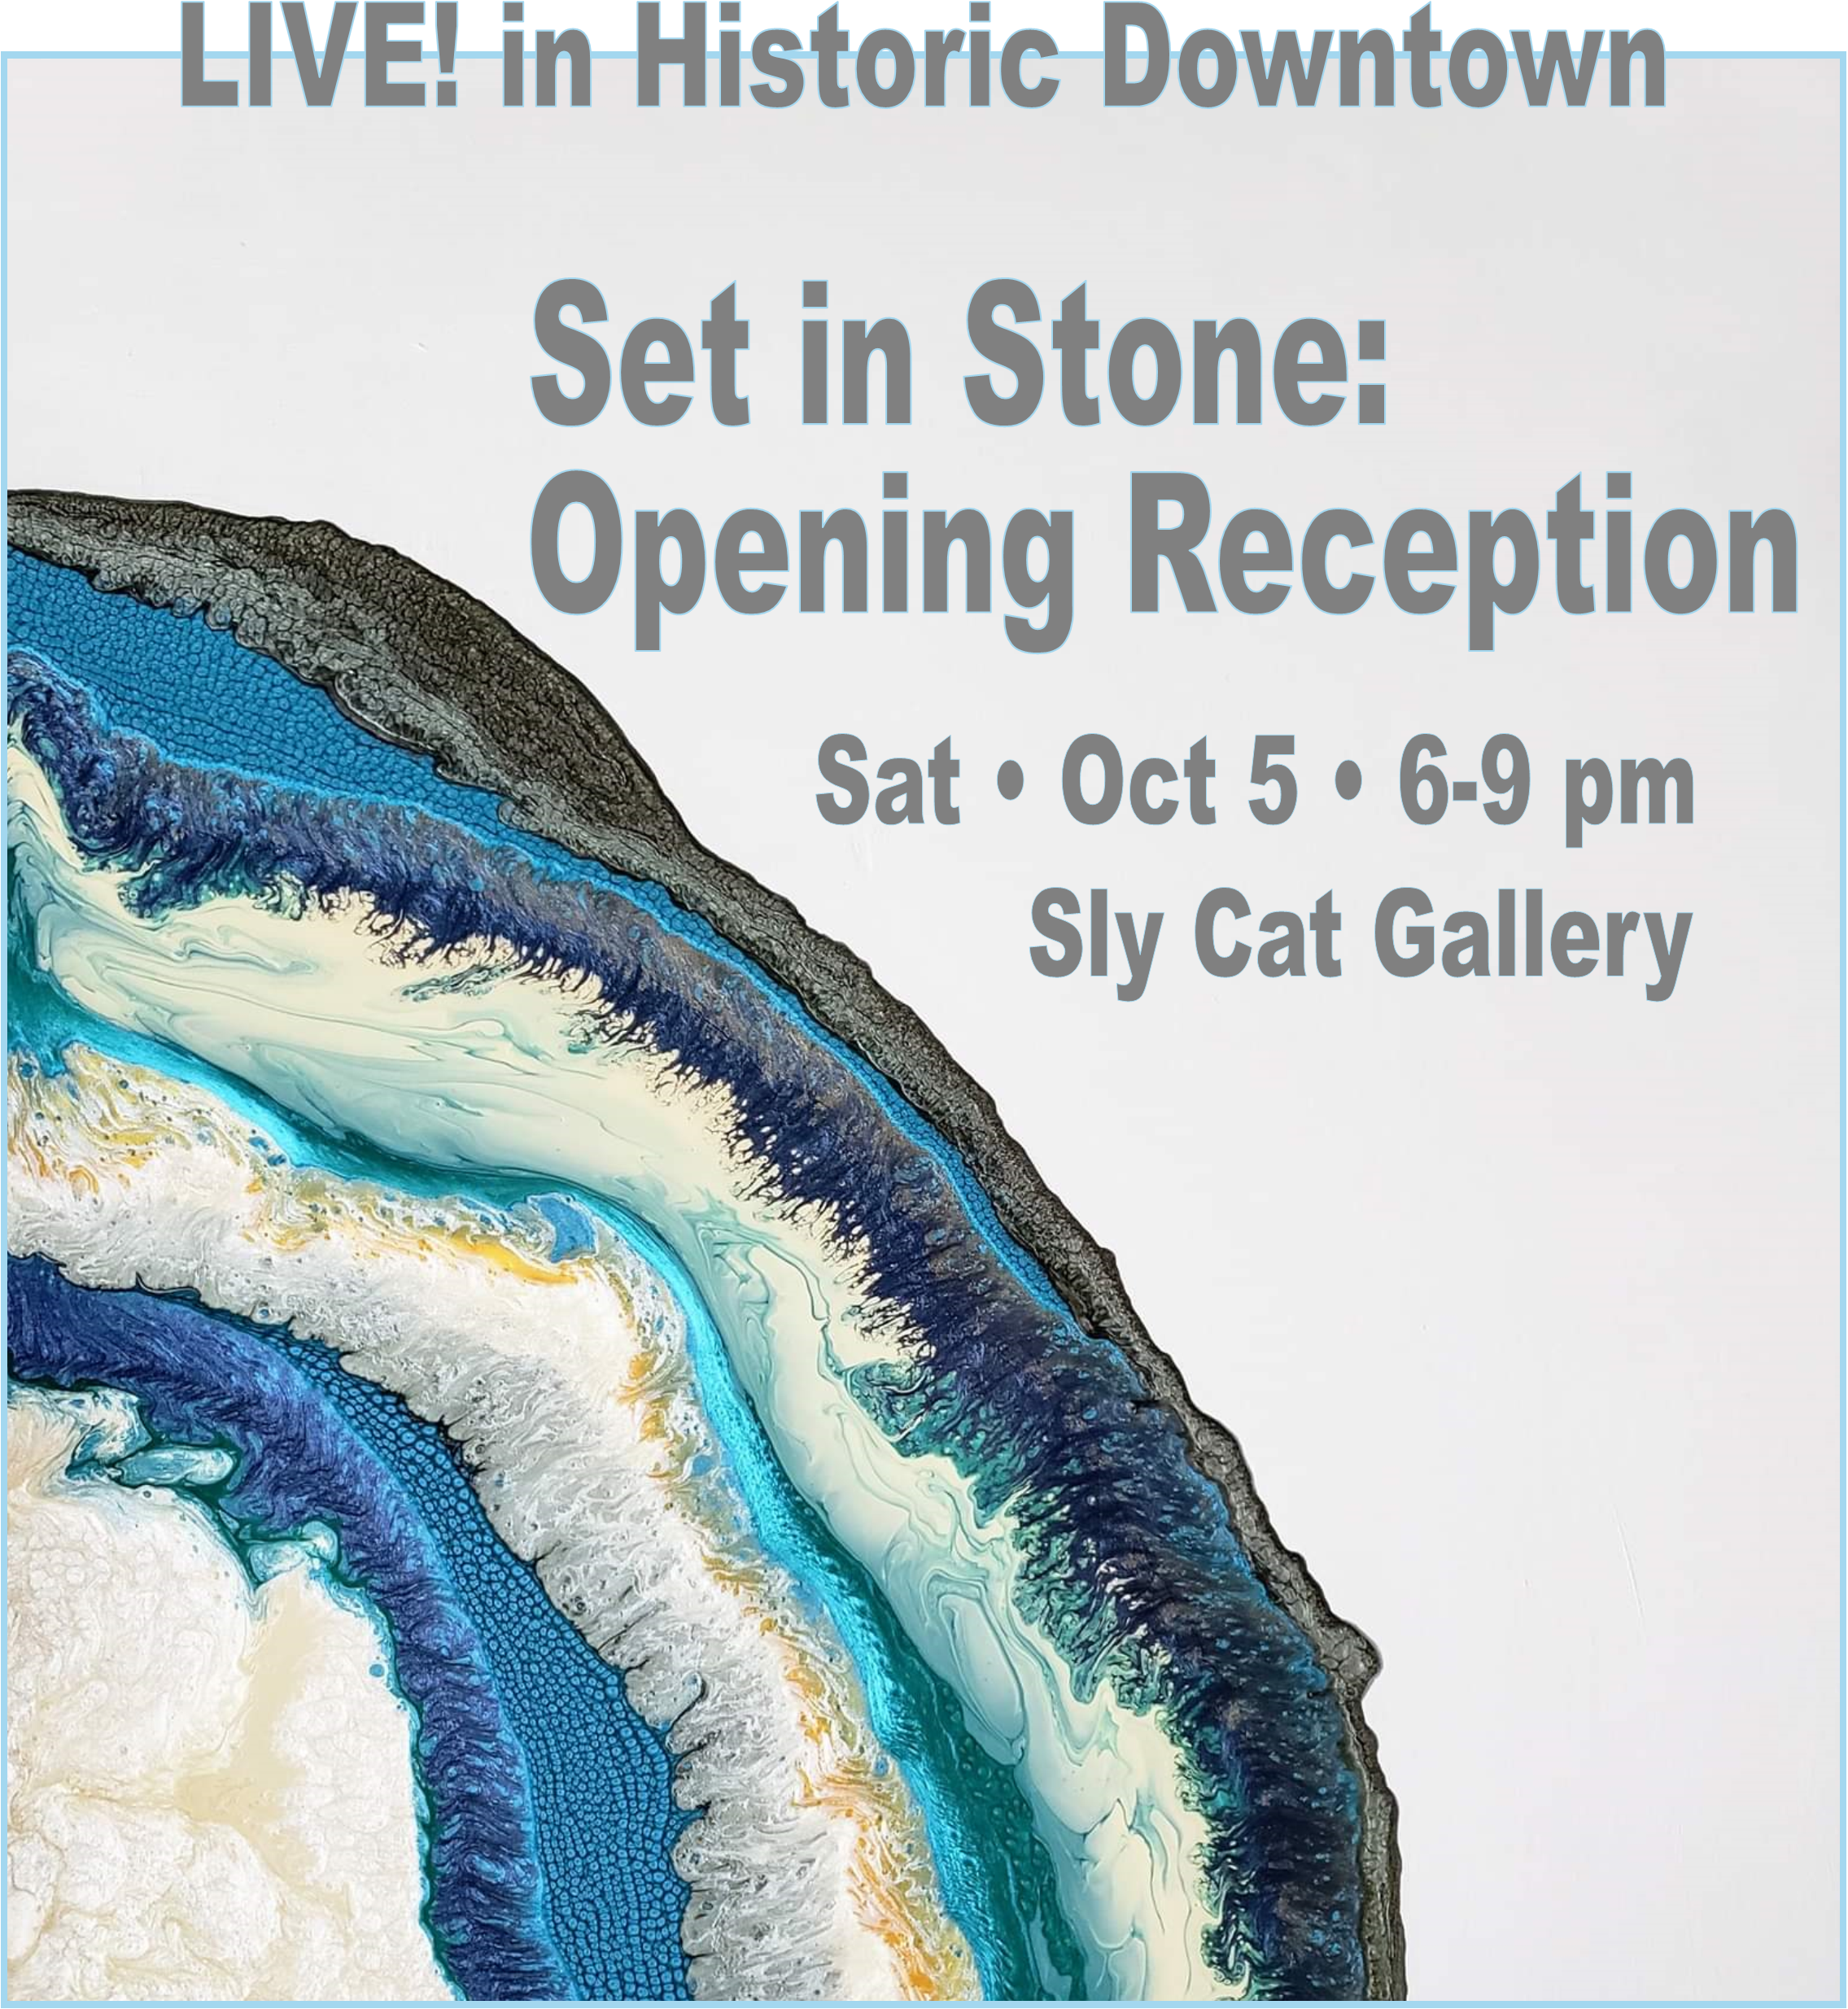 Sly Cat Gallery Set in Stone